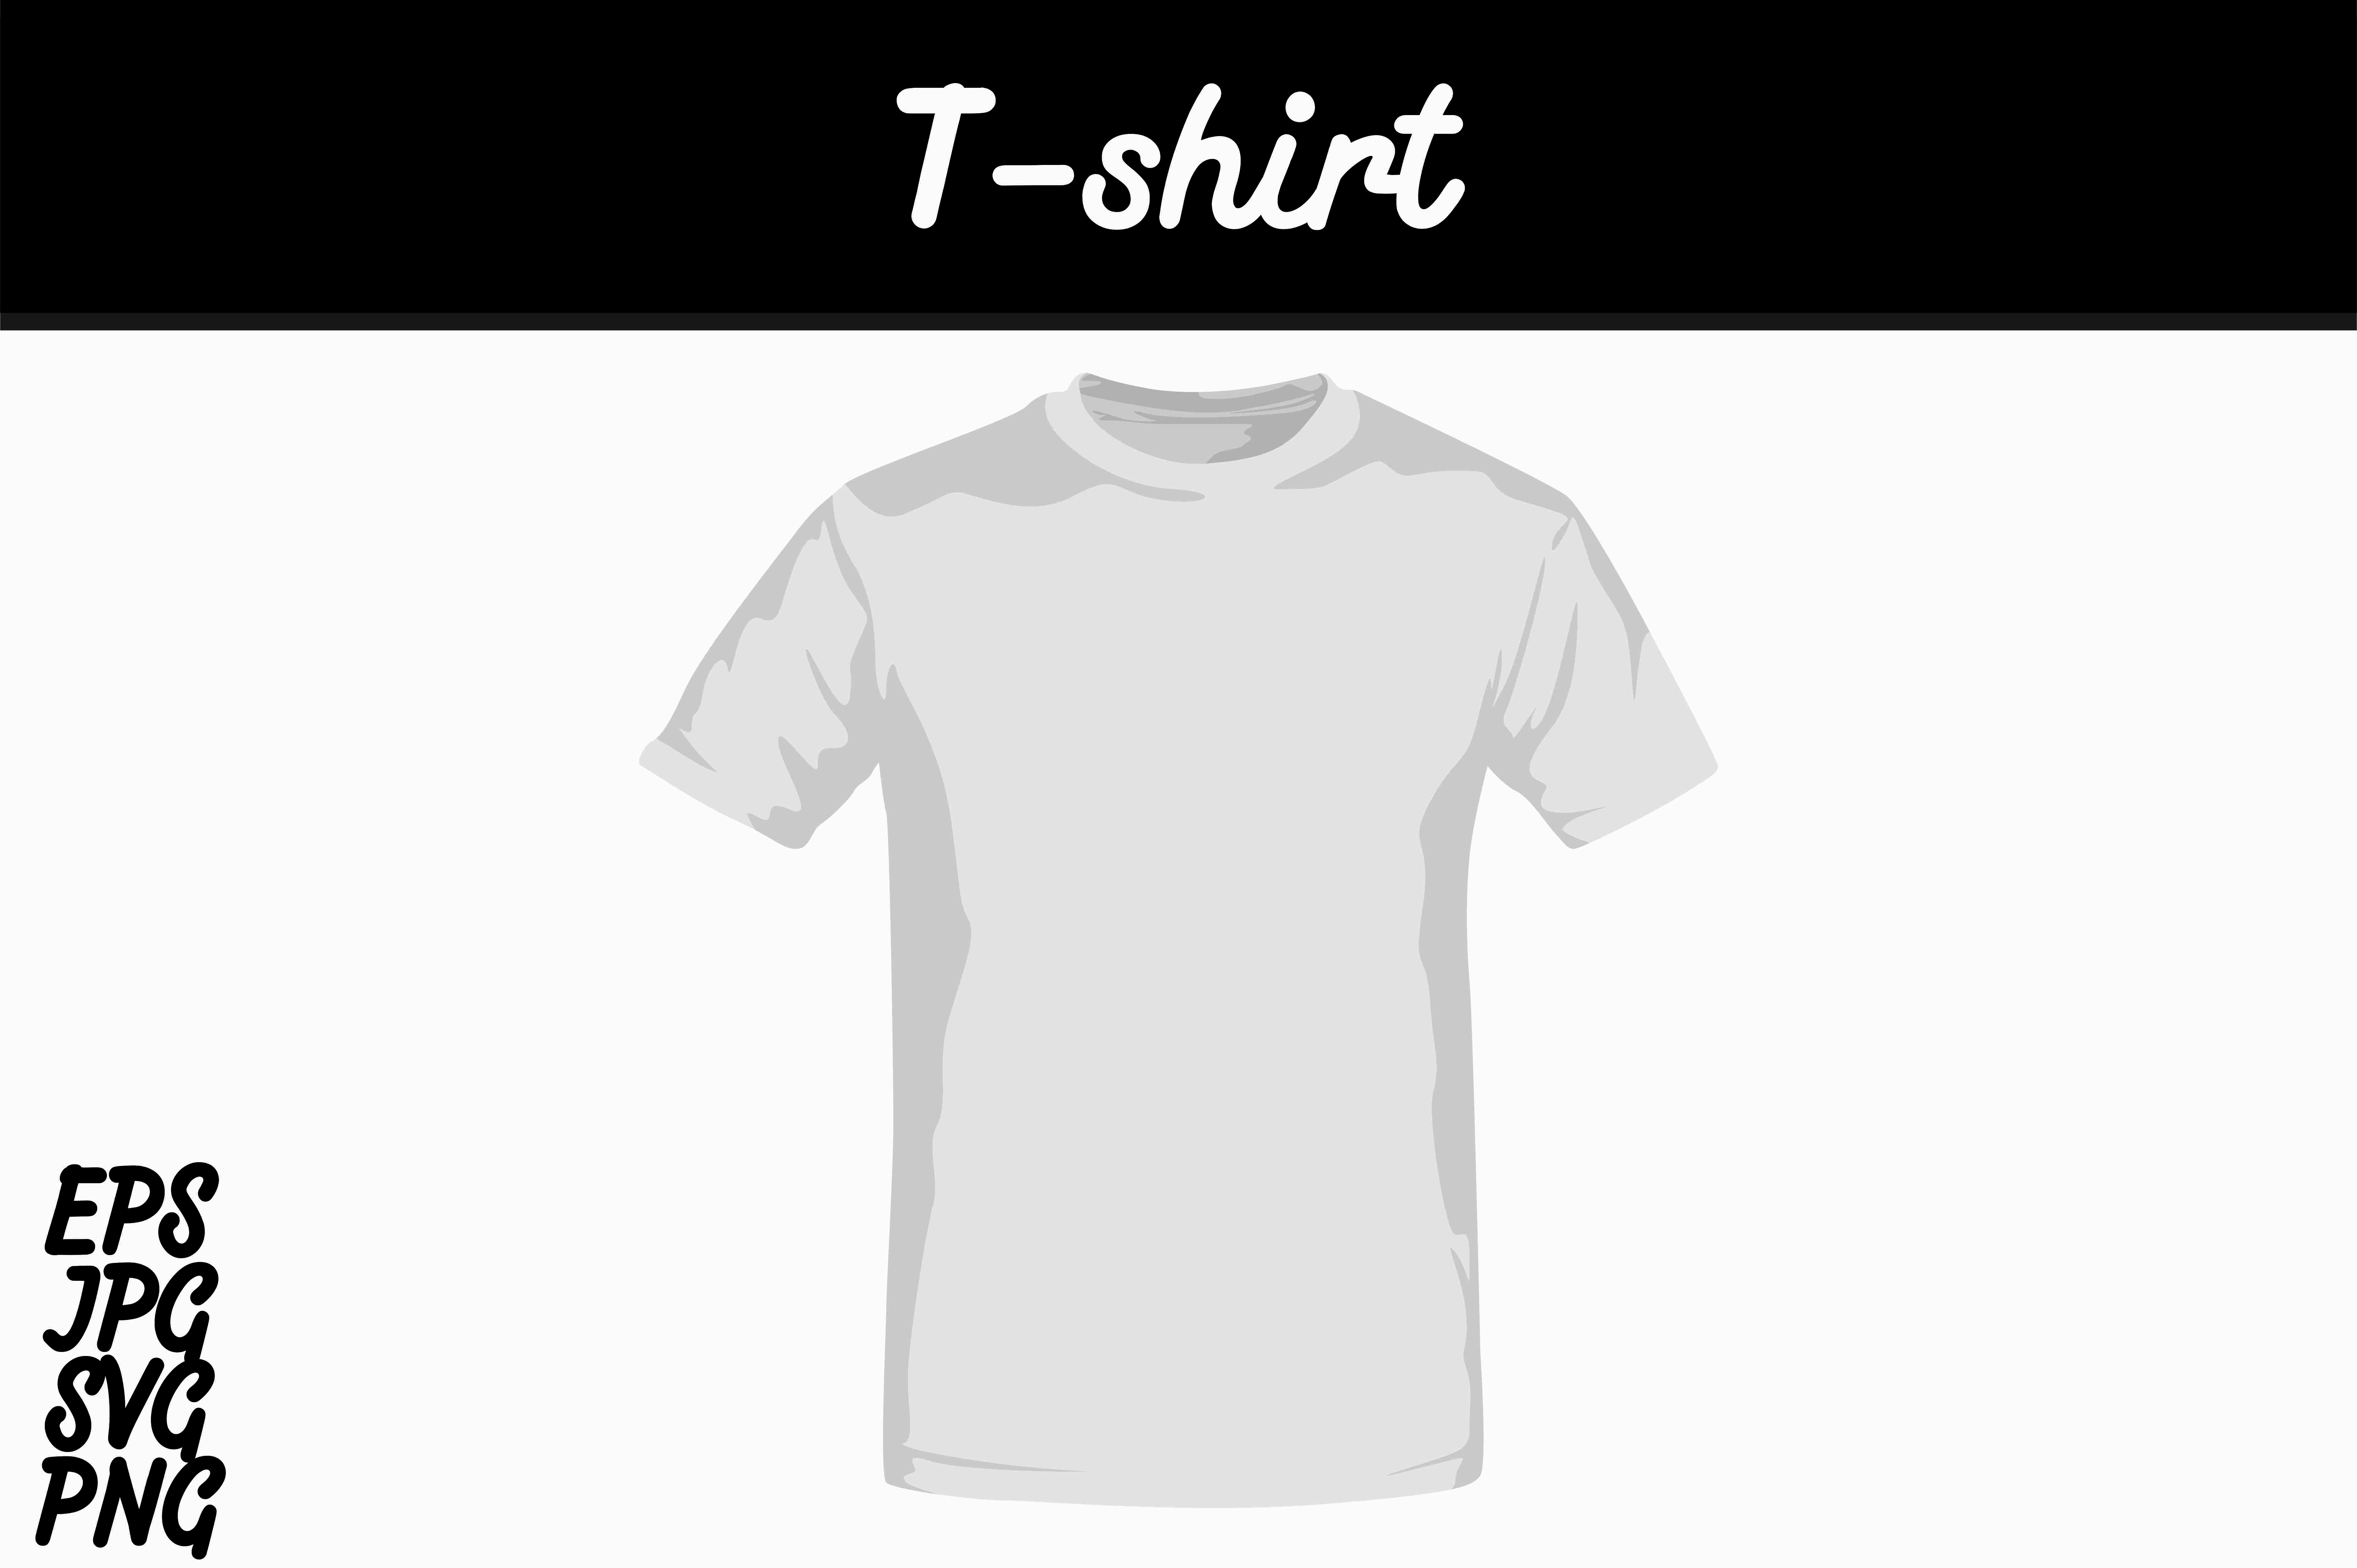 Download Free T Shirt Svg Vector Image Graphic By Arief Sapta Adjie Creative SVG Cut Files